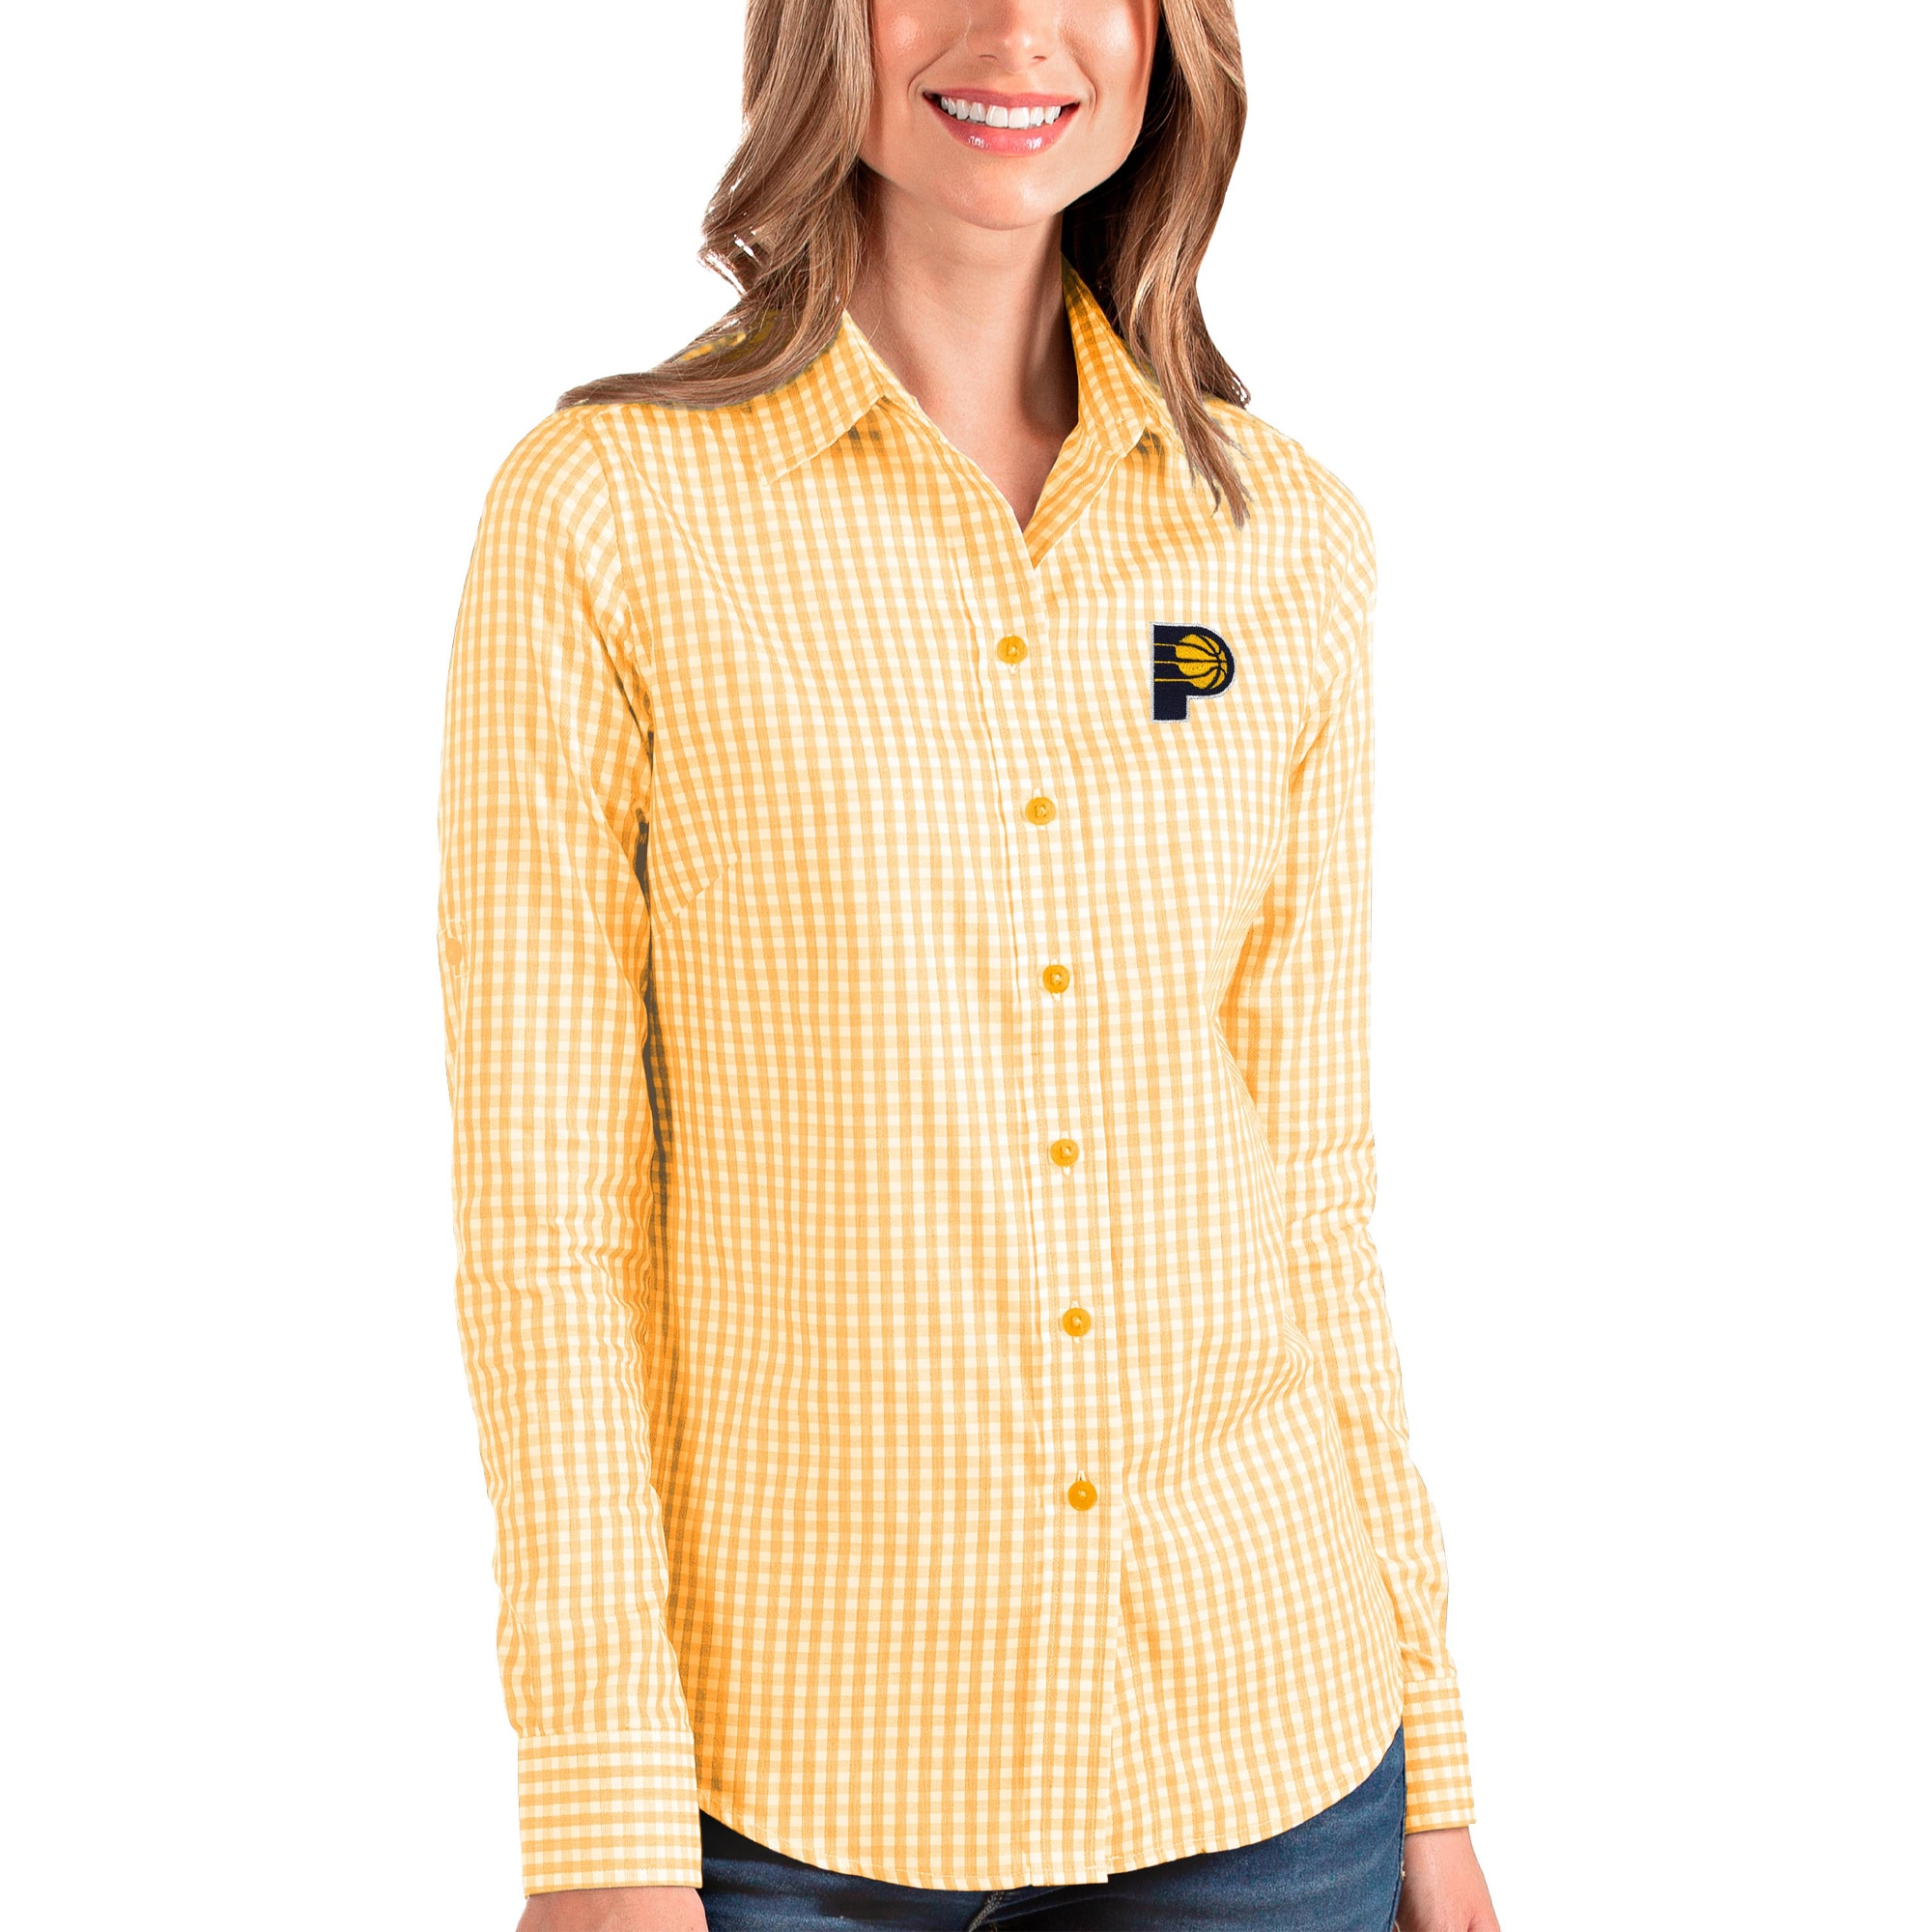 Indiana Pacers Antigua Women's Structure Button-Up Long Sleeve Shirt - Gold/White